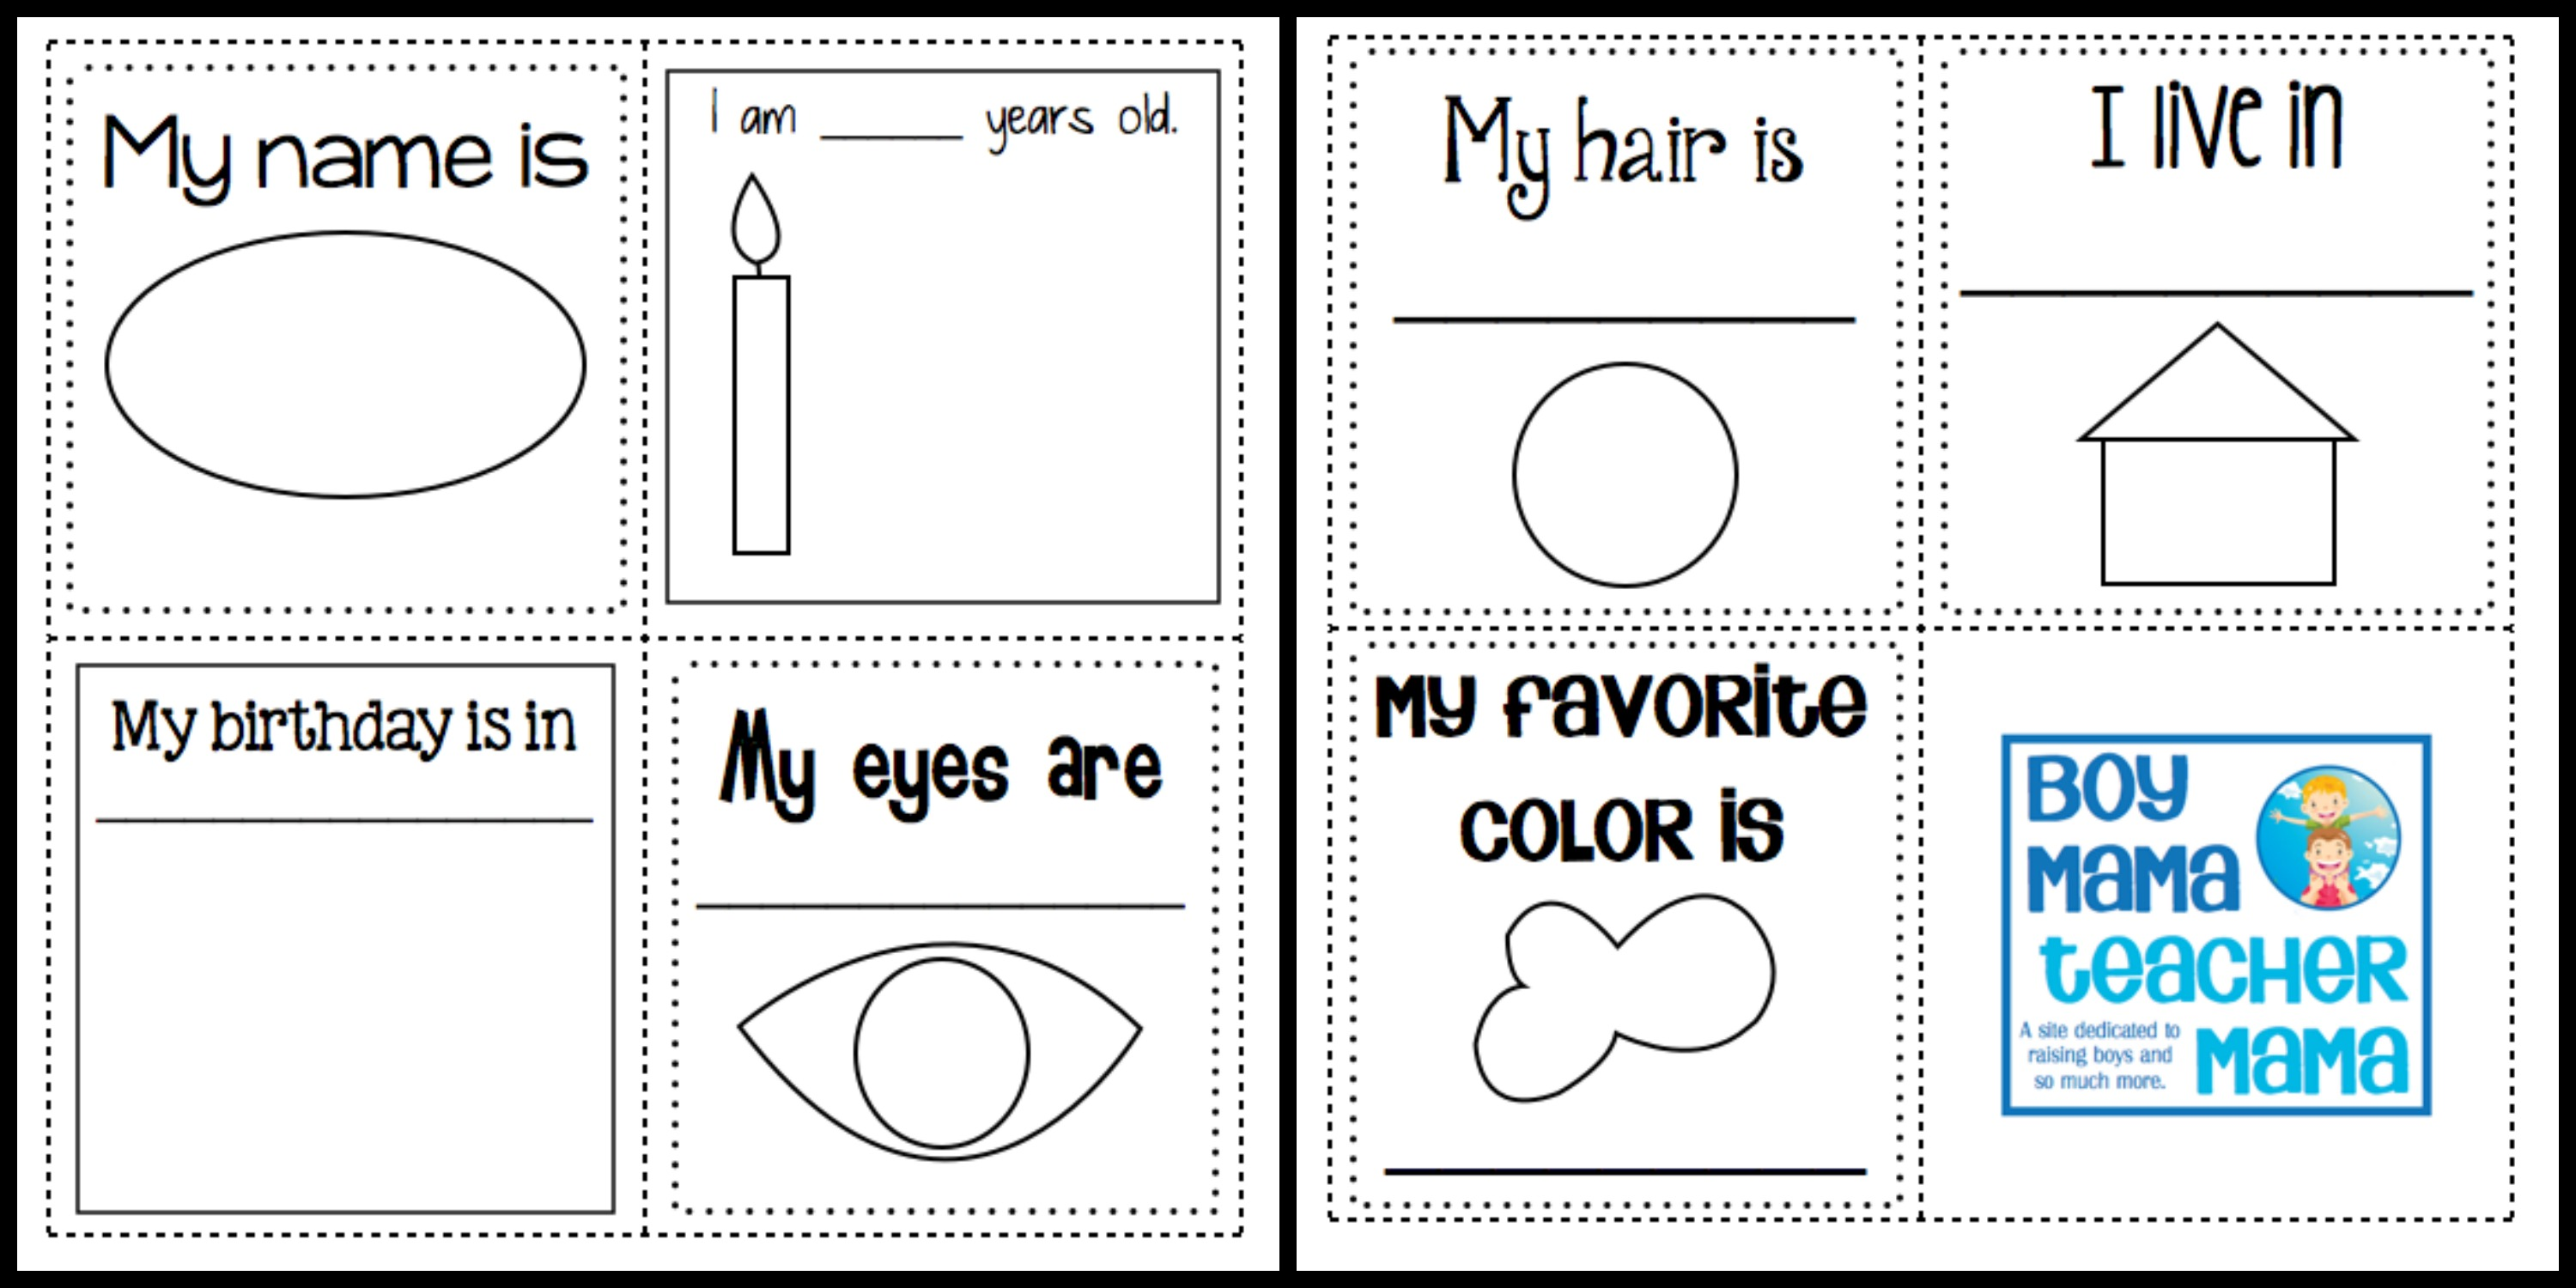 Teacher mama all about me cube and data collection for About me template for students